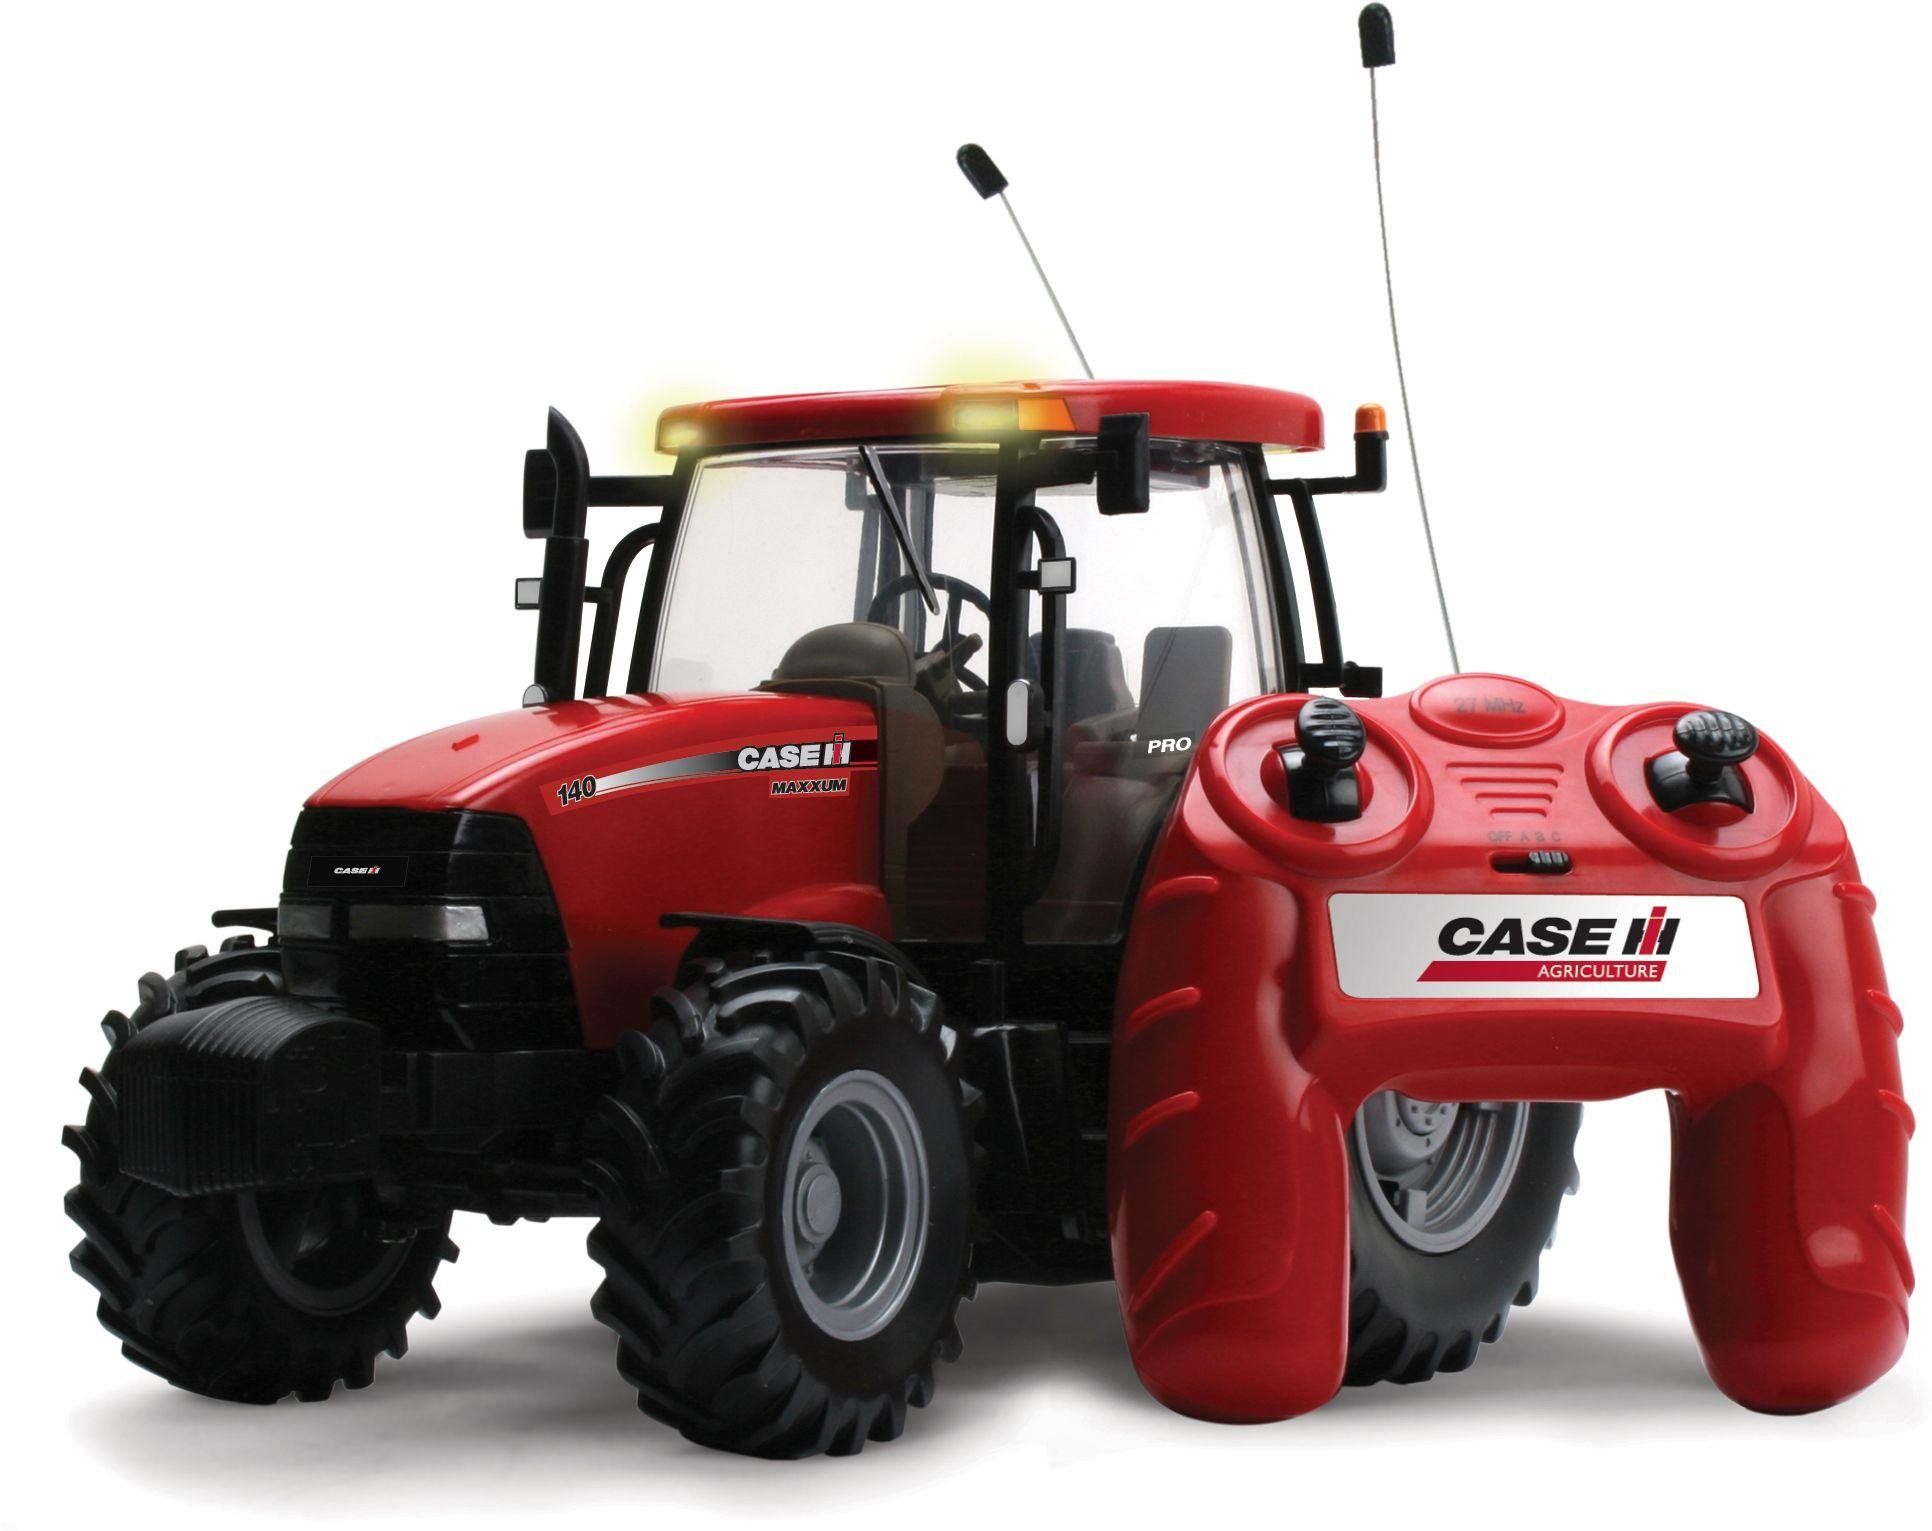 Image of Britians Big Farm - Radio Controlled Case - 1H 140 Tractor